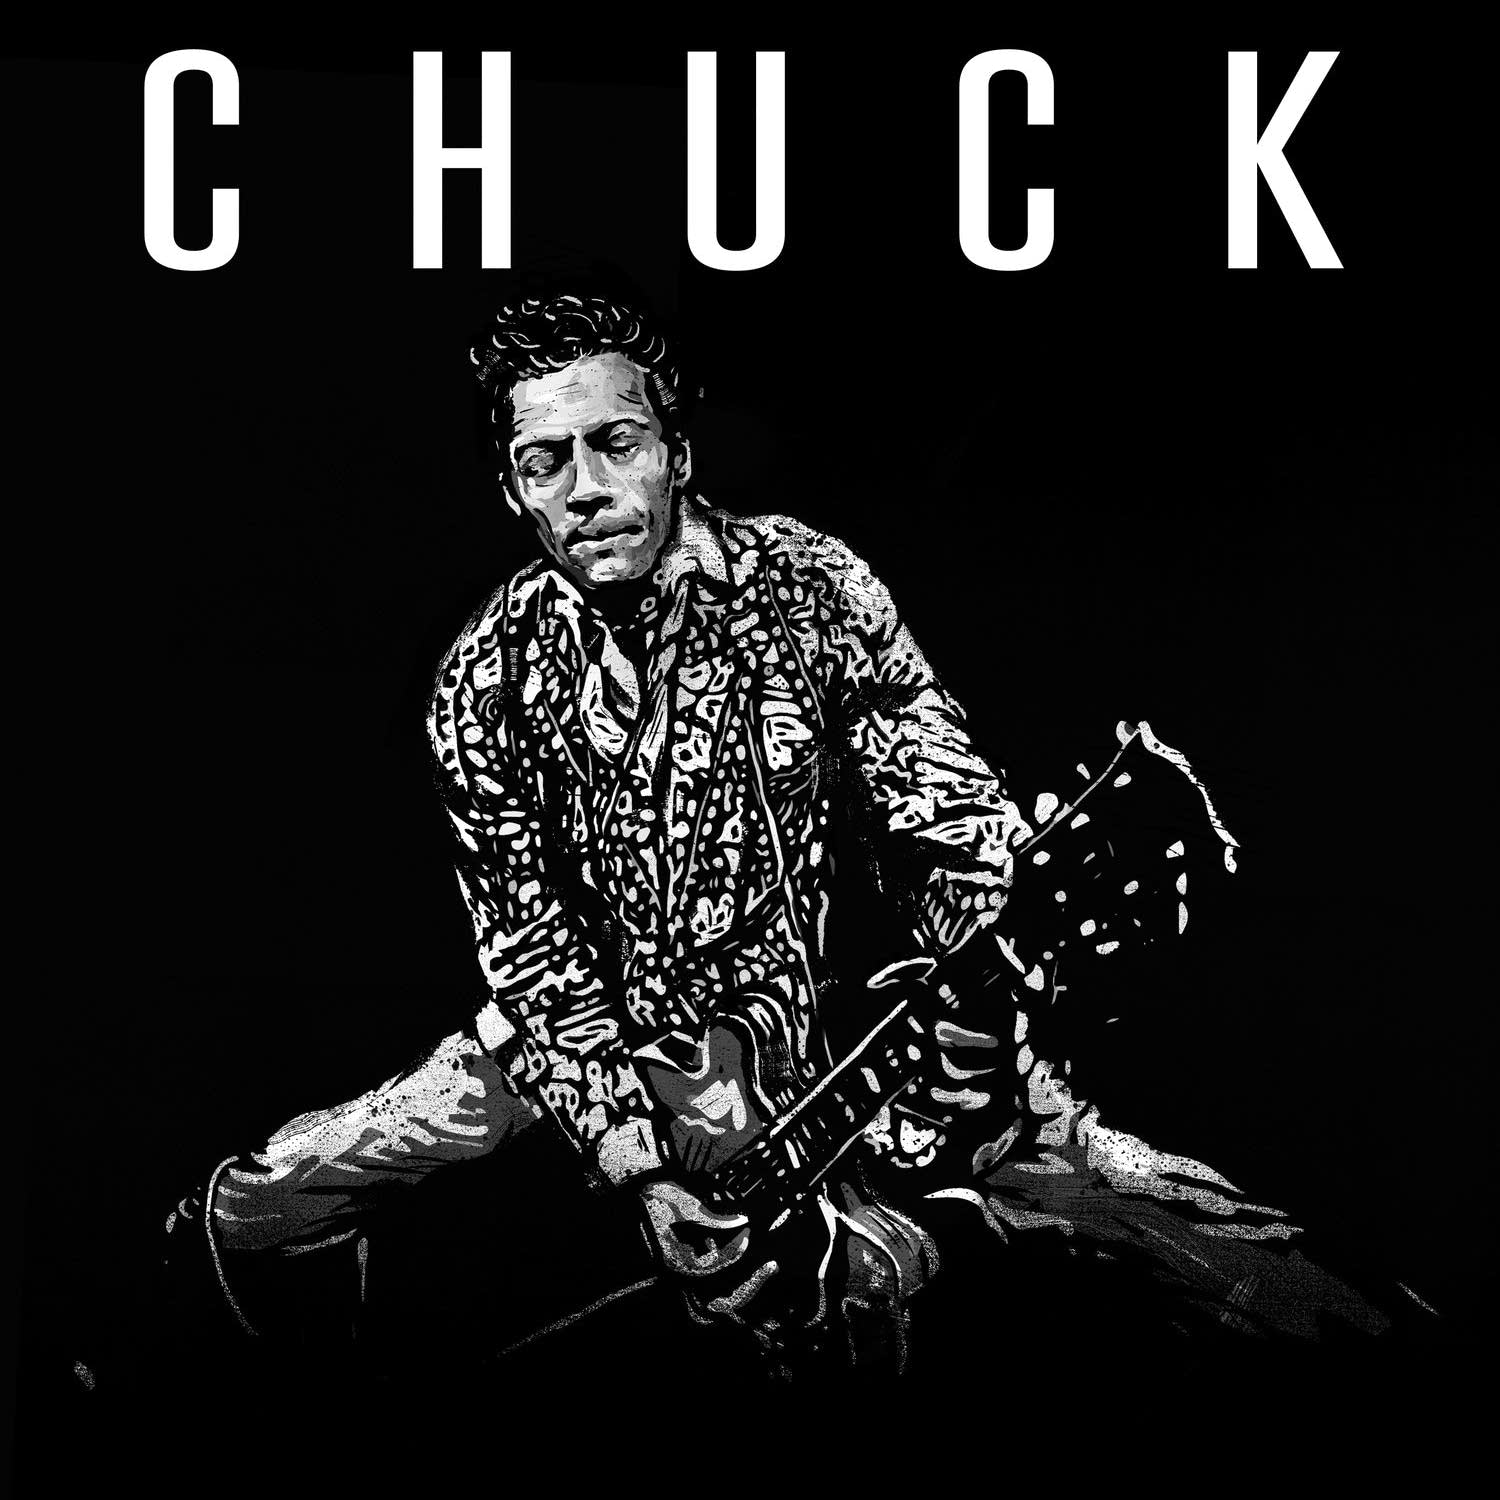 CHUCK is Chuck Berry's new album